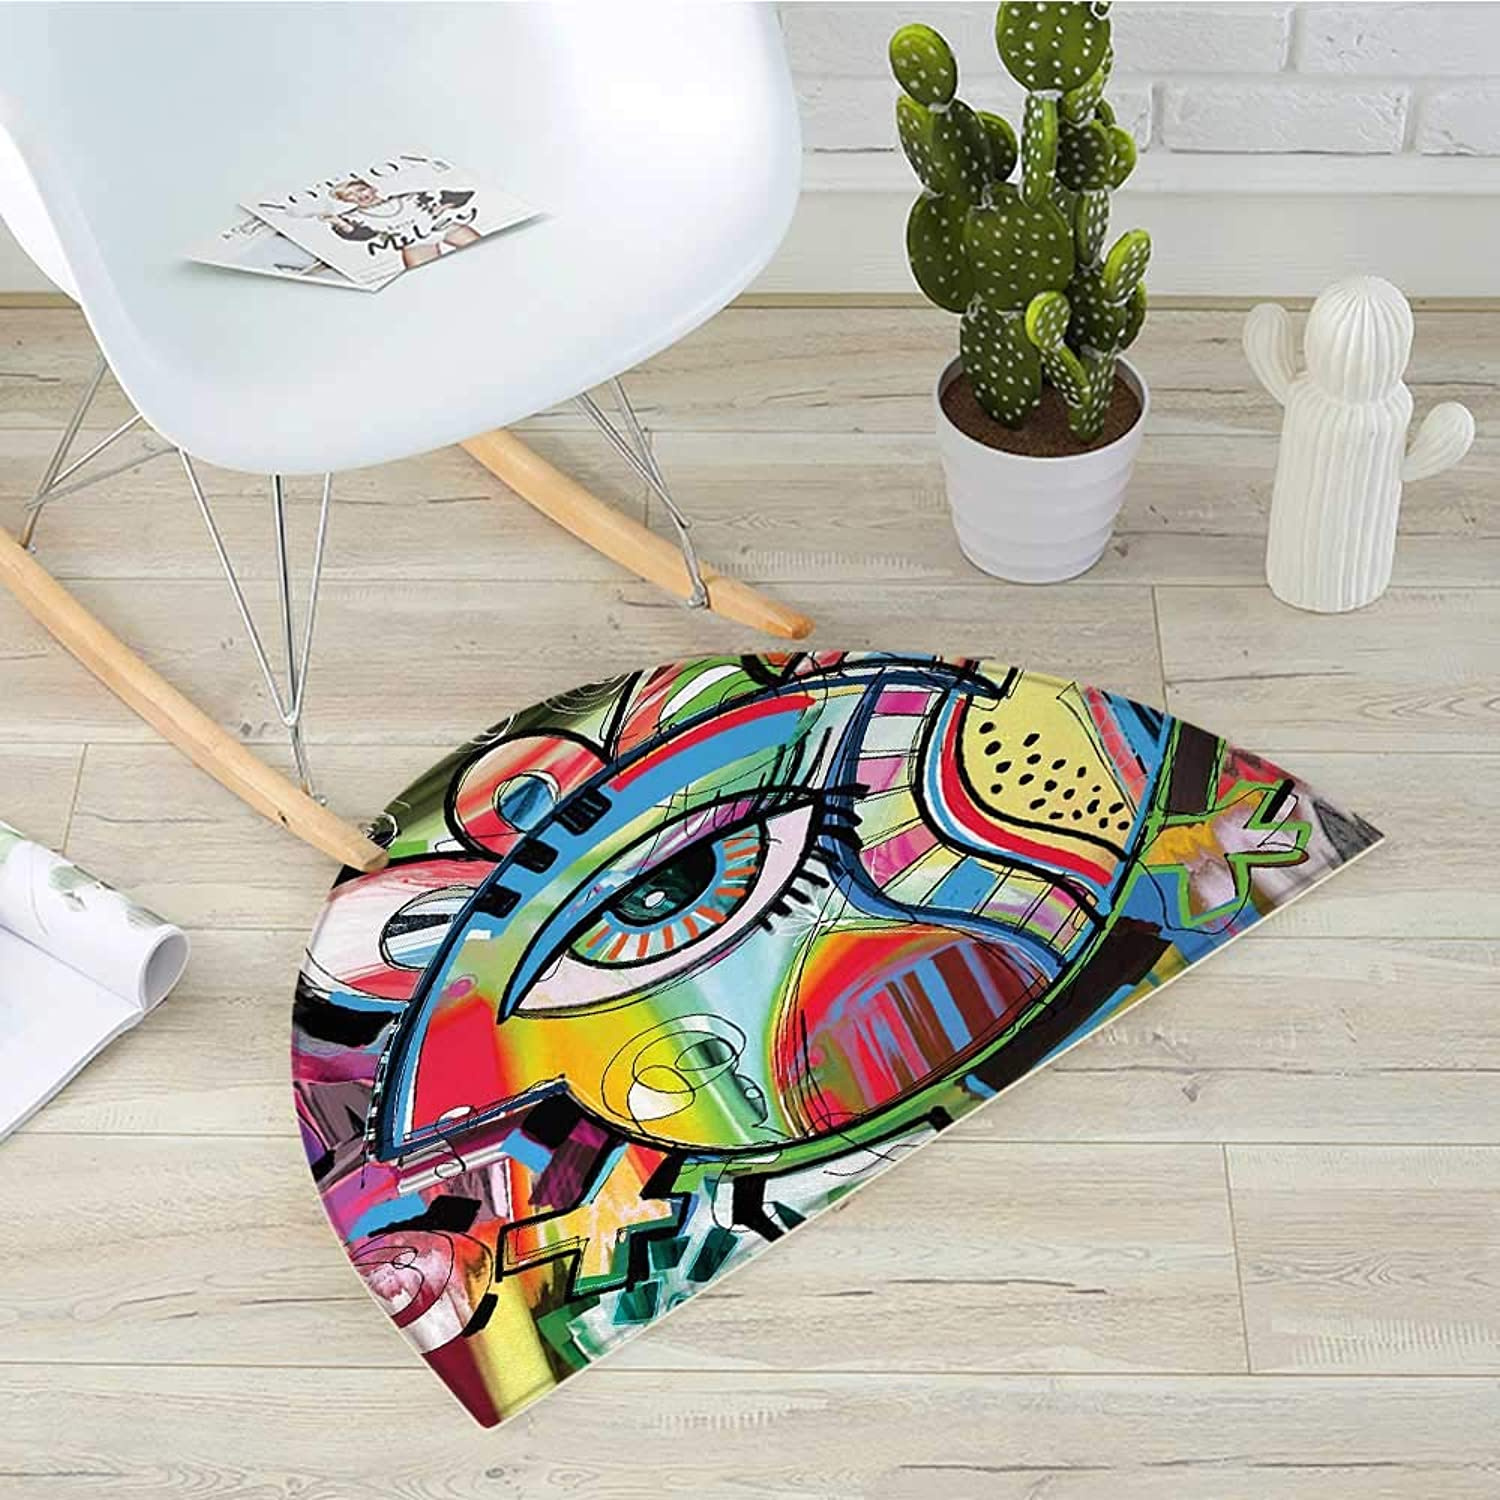 Contemporary Semicircular CushionLively colord Hand Drawn Style Artwork Abstract Composition with an Eye Motif Entry Door Mat H 19.7  xD 31.5  Multicolor